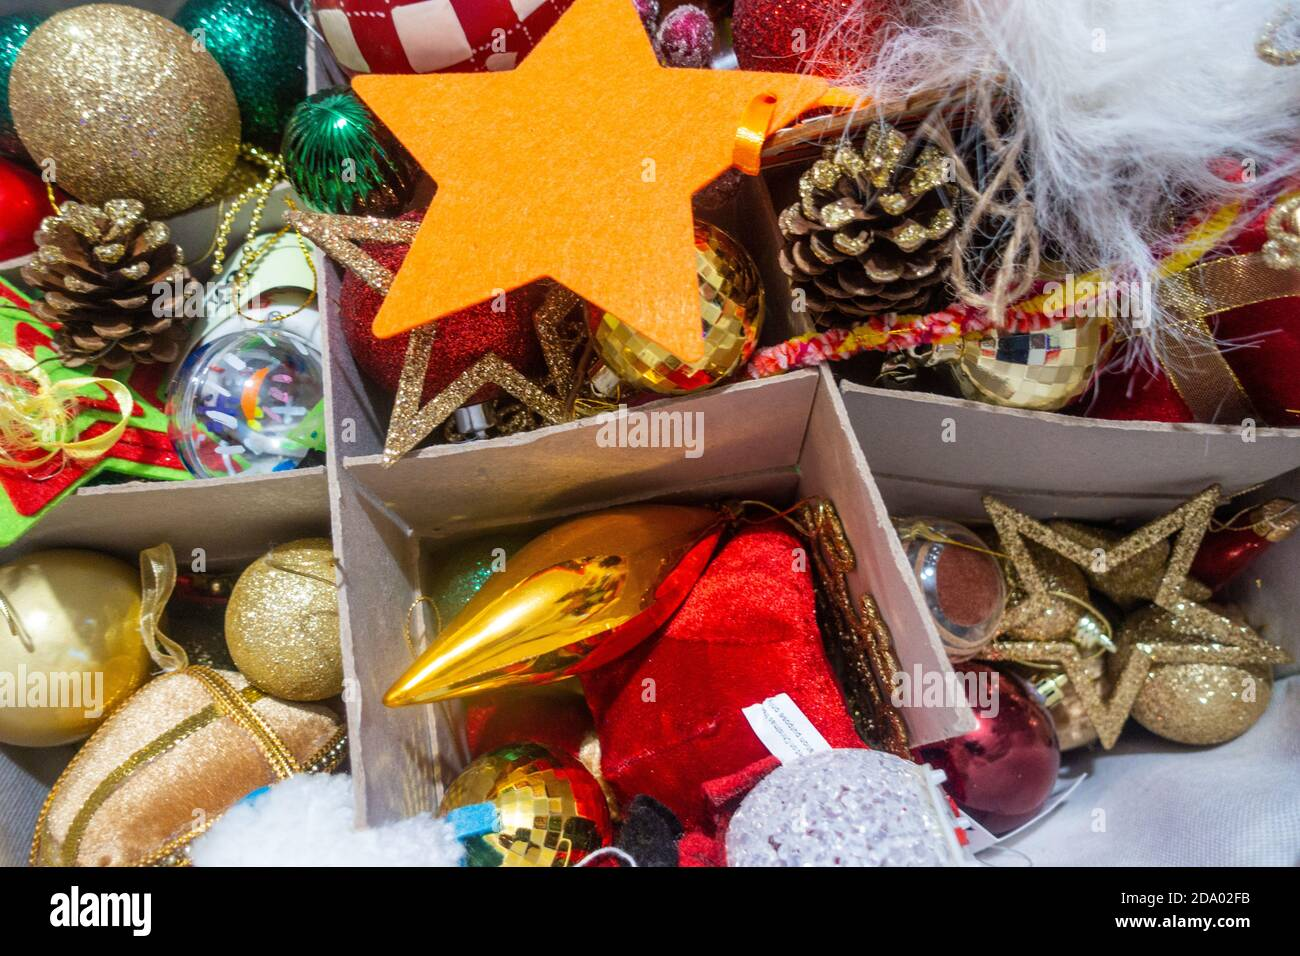 a-box-full-of-baubles-and-colourful-christmas-decorations-for-a-christmas-tree-2DA02FB.jpg